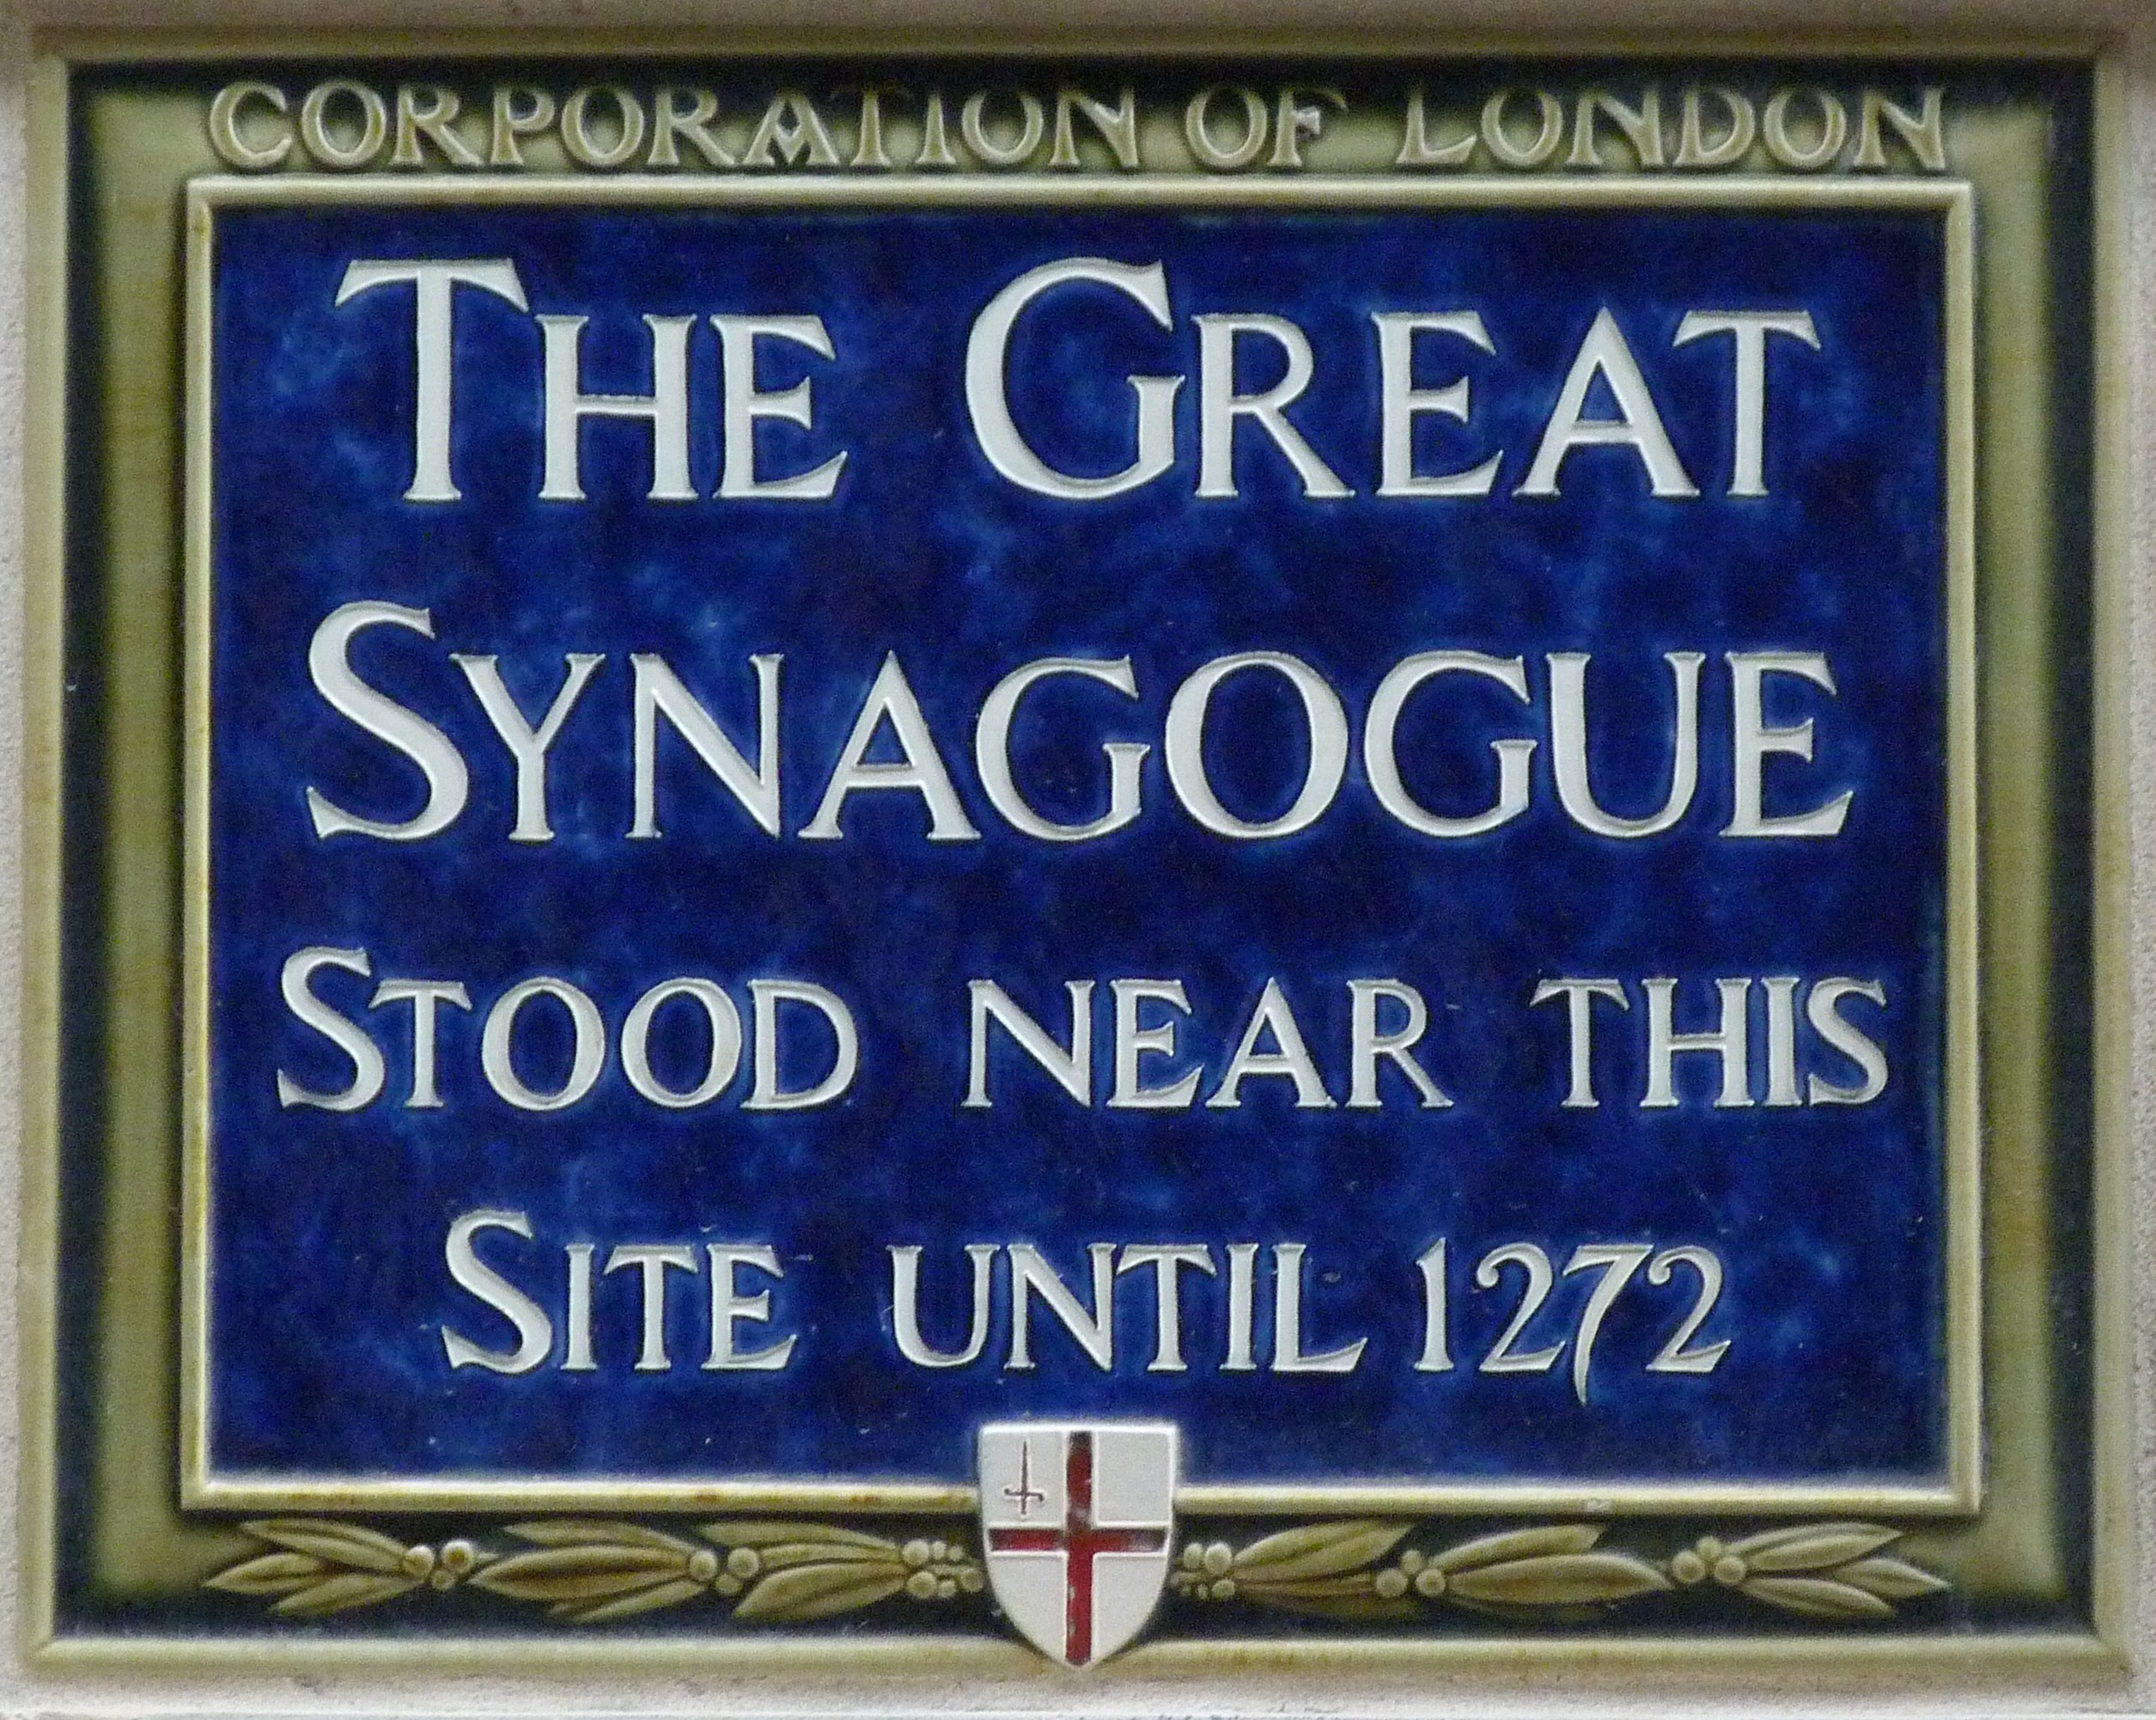 Site of Great Synagogue,Old Jewry (-1272)